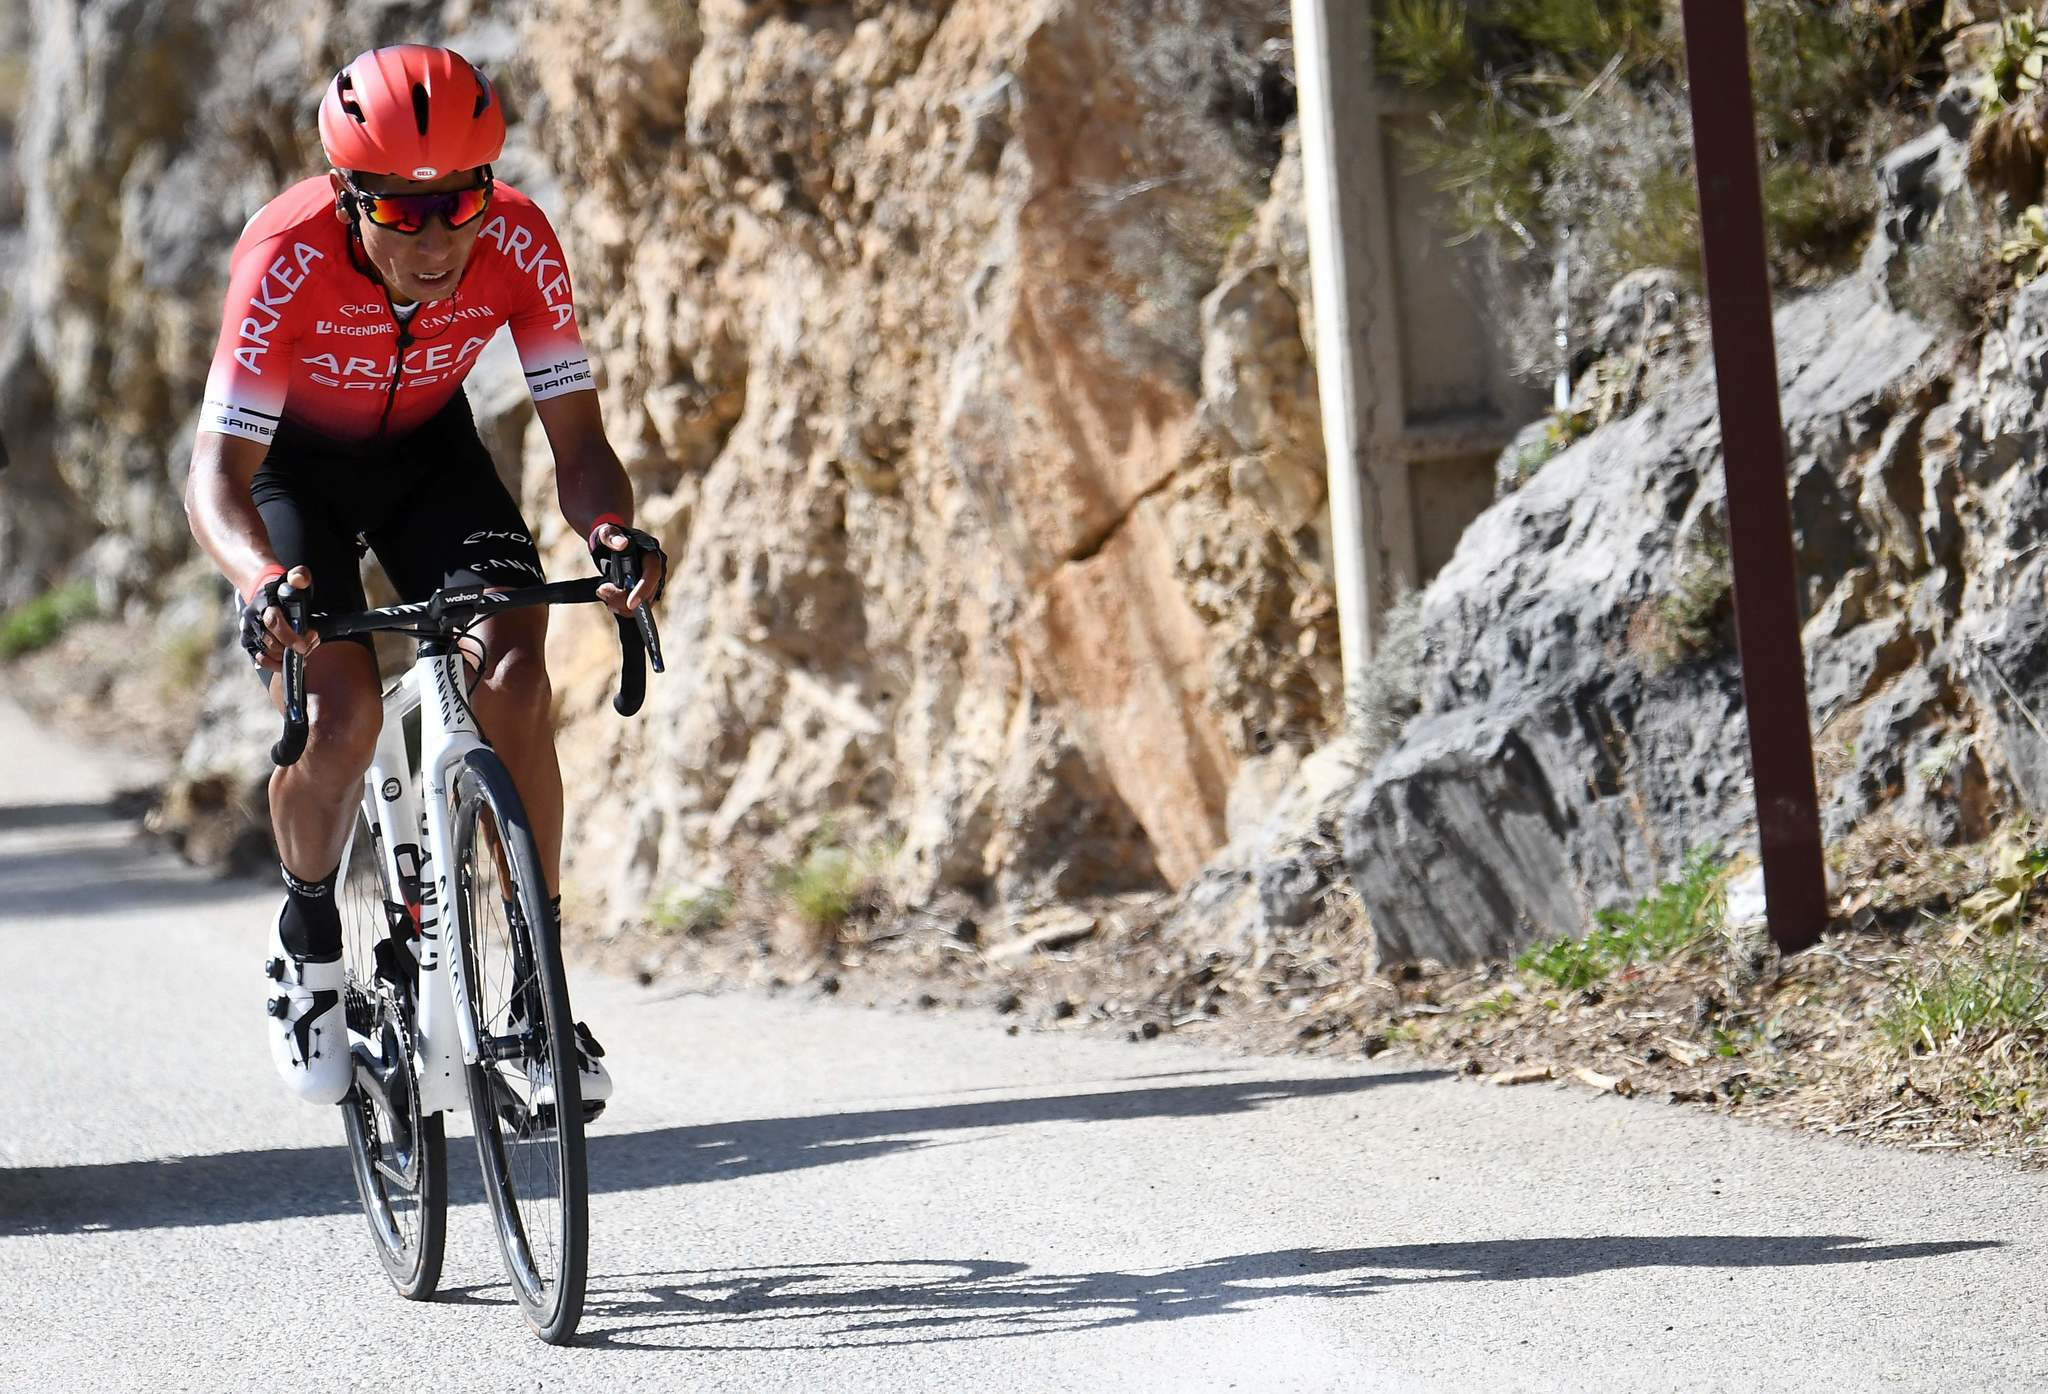 Team Arkea Samsic Colombian rider lt;HIT gt;Nairo lt;/HIT gt; Quintana climbs, during the 166,5 km, 7th stage of the 78th Paris - Nice cycling race stage between Nice and Valdeblore La Colmiane, on March 14, 2020. - The organizers of the 78th Paris-Nice cycling race announced on March 13, 2020 the cancellation of the last stage scheduled for Sunday due to the coronavirus pandemic. (Photo by Alain JOCARD / AFP)